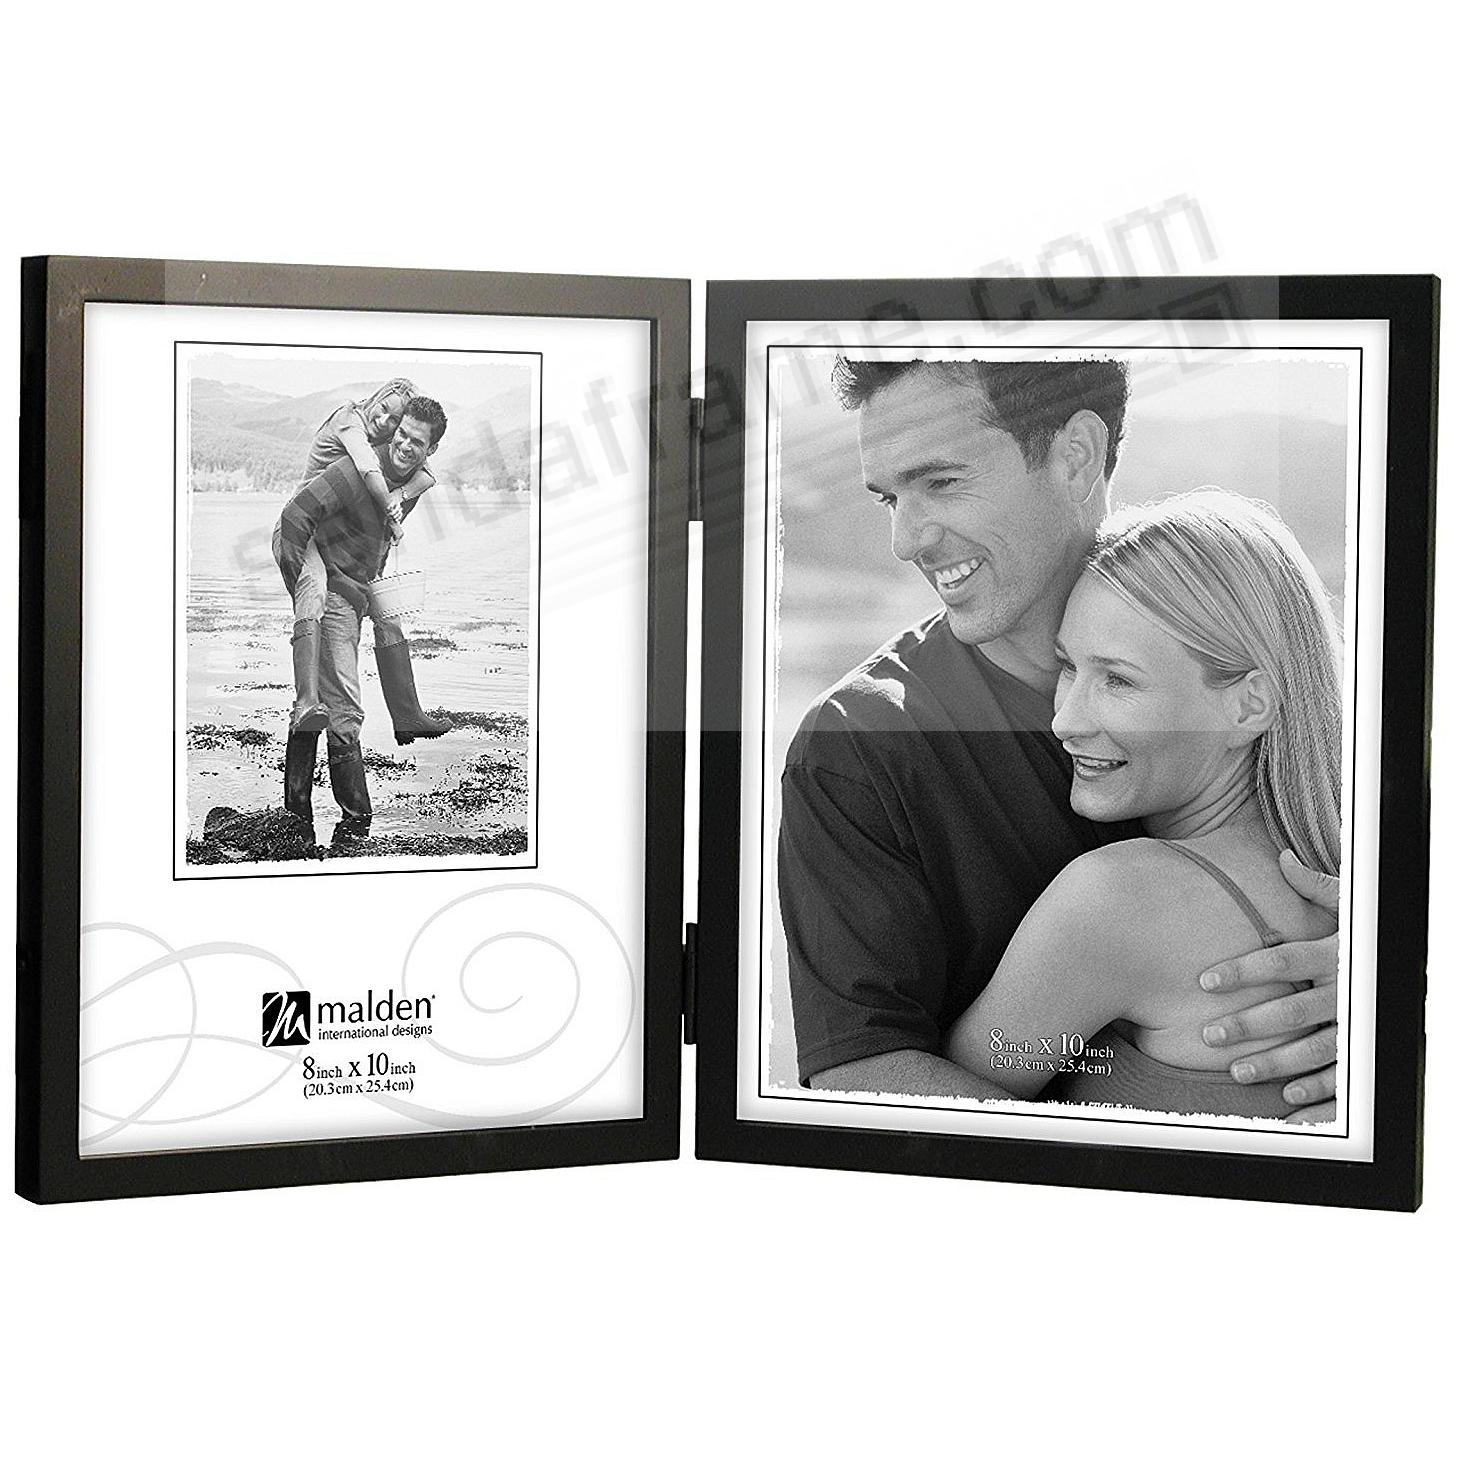 Double Portrait Hinged Black CONCEPTS wood 8x10 frame by Malden®